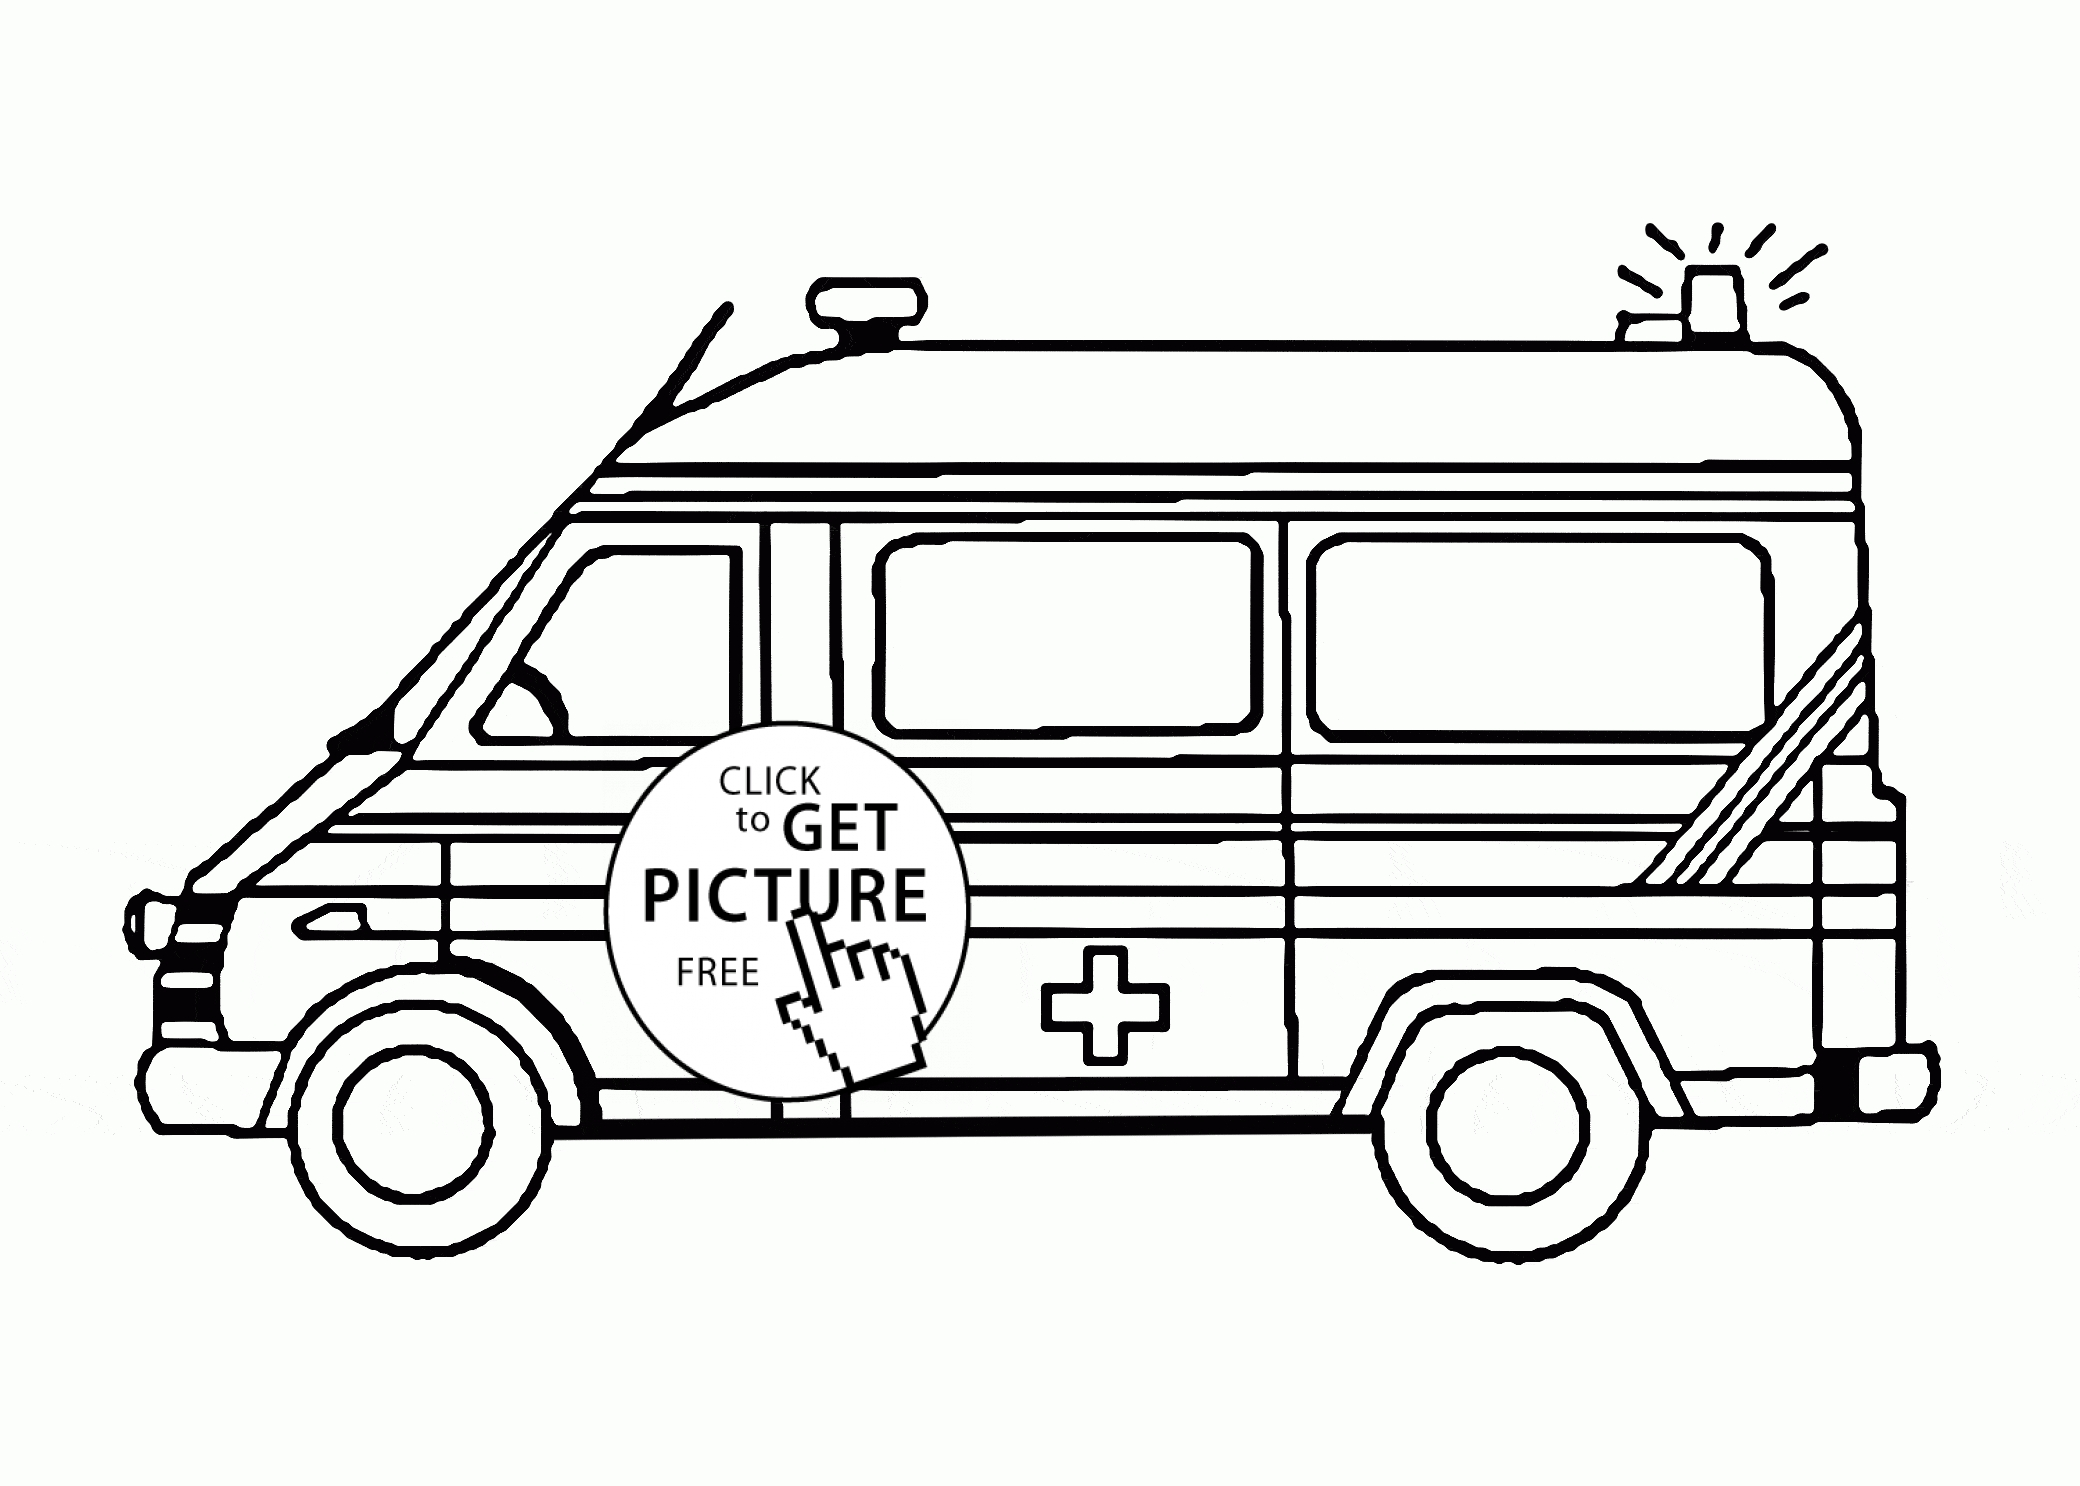 ambulance coloring pages - ambulance car with flasher coloring page for kids transportation coloring pages printables free